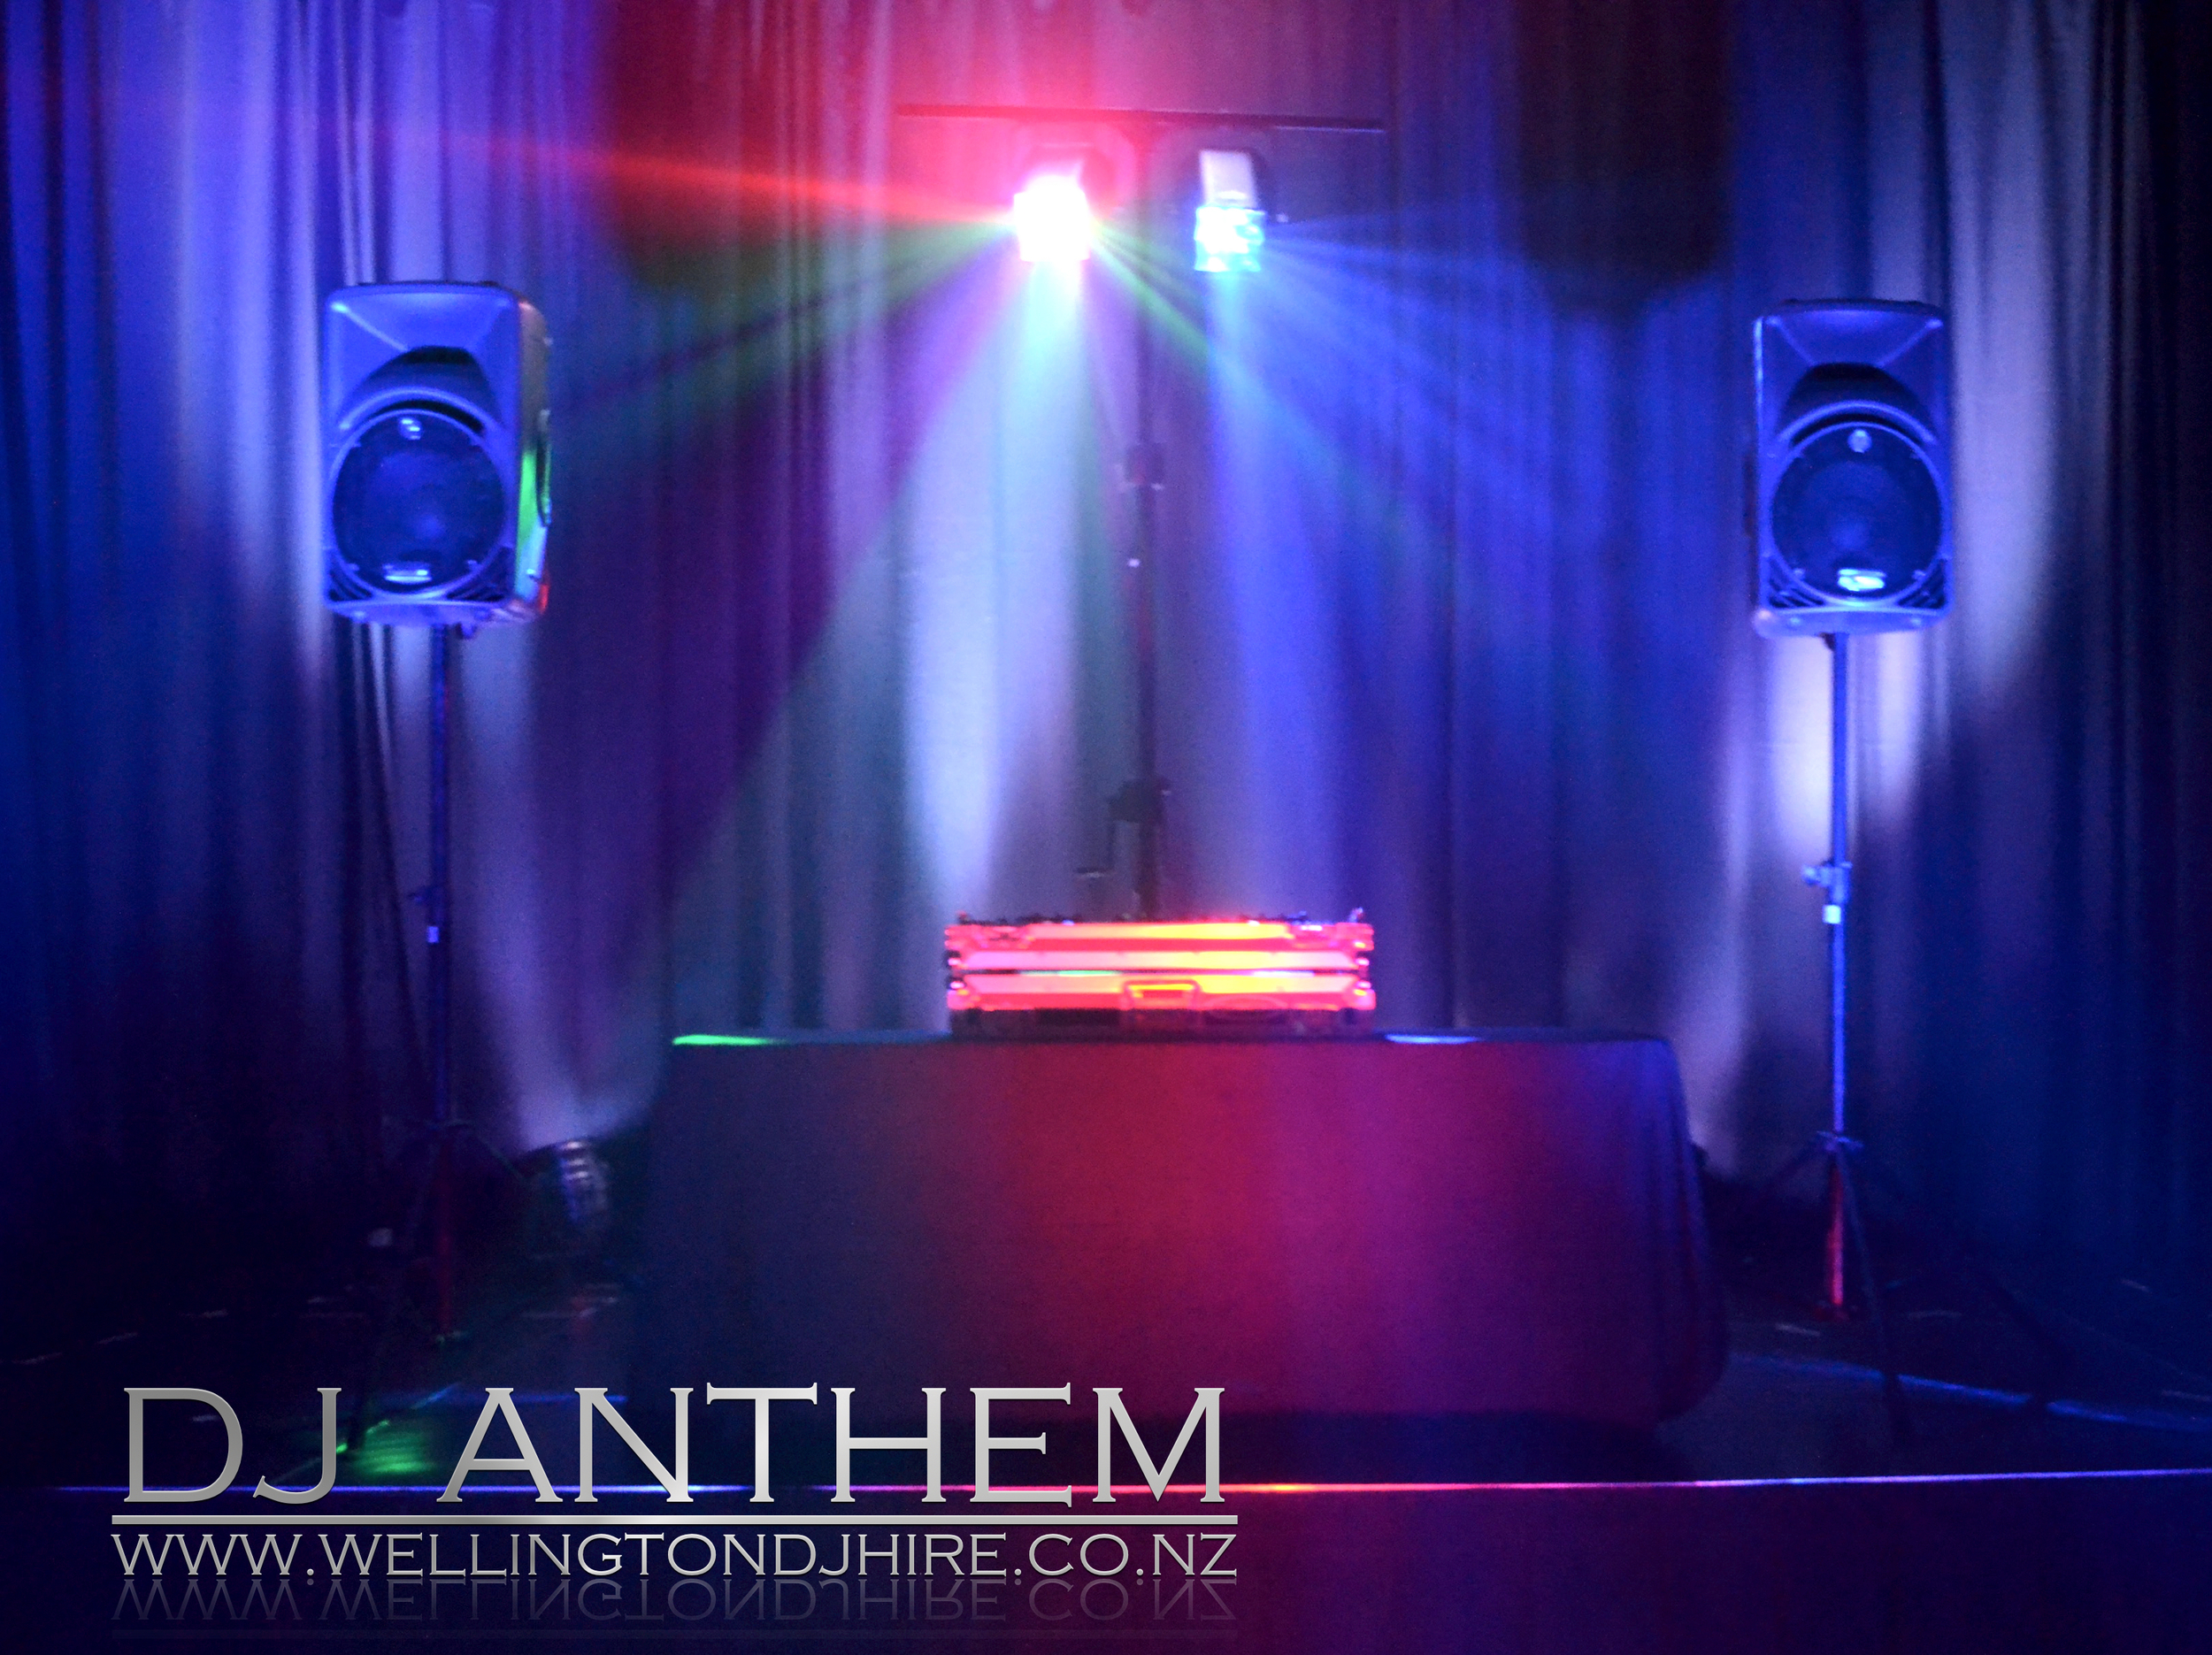 DJ Anthem private Party DJ Setup .jpg